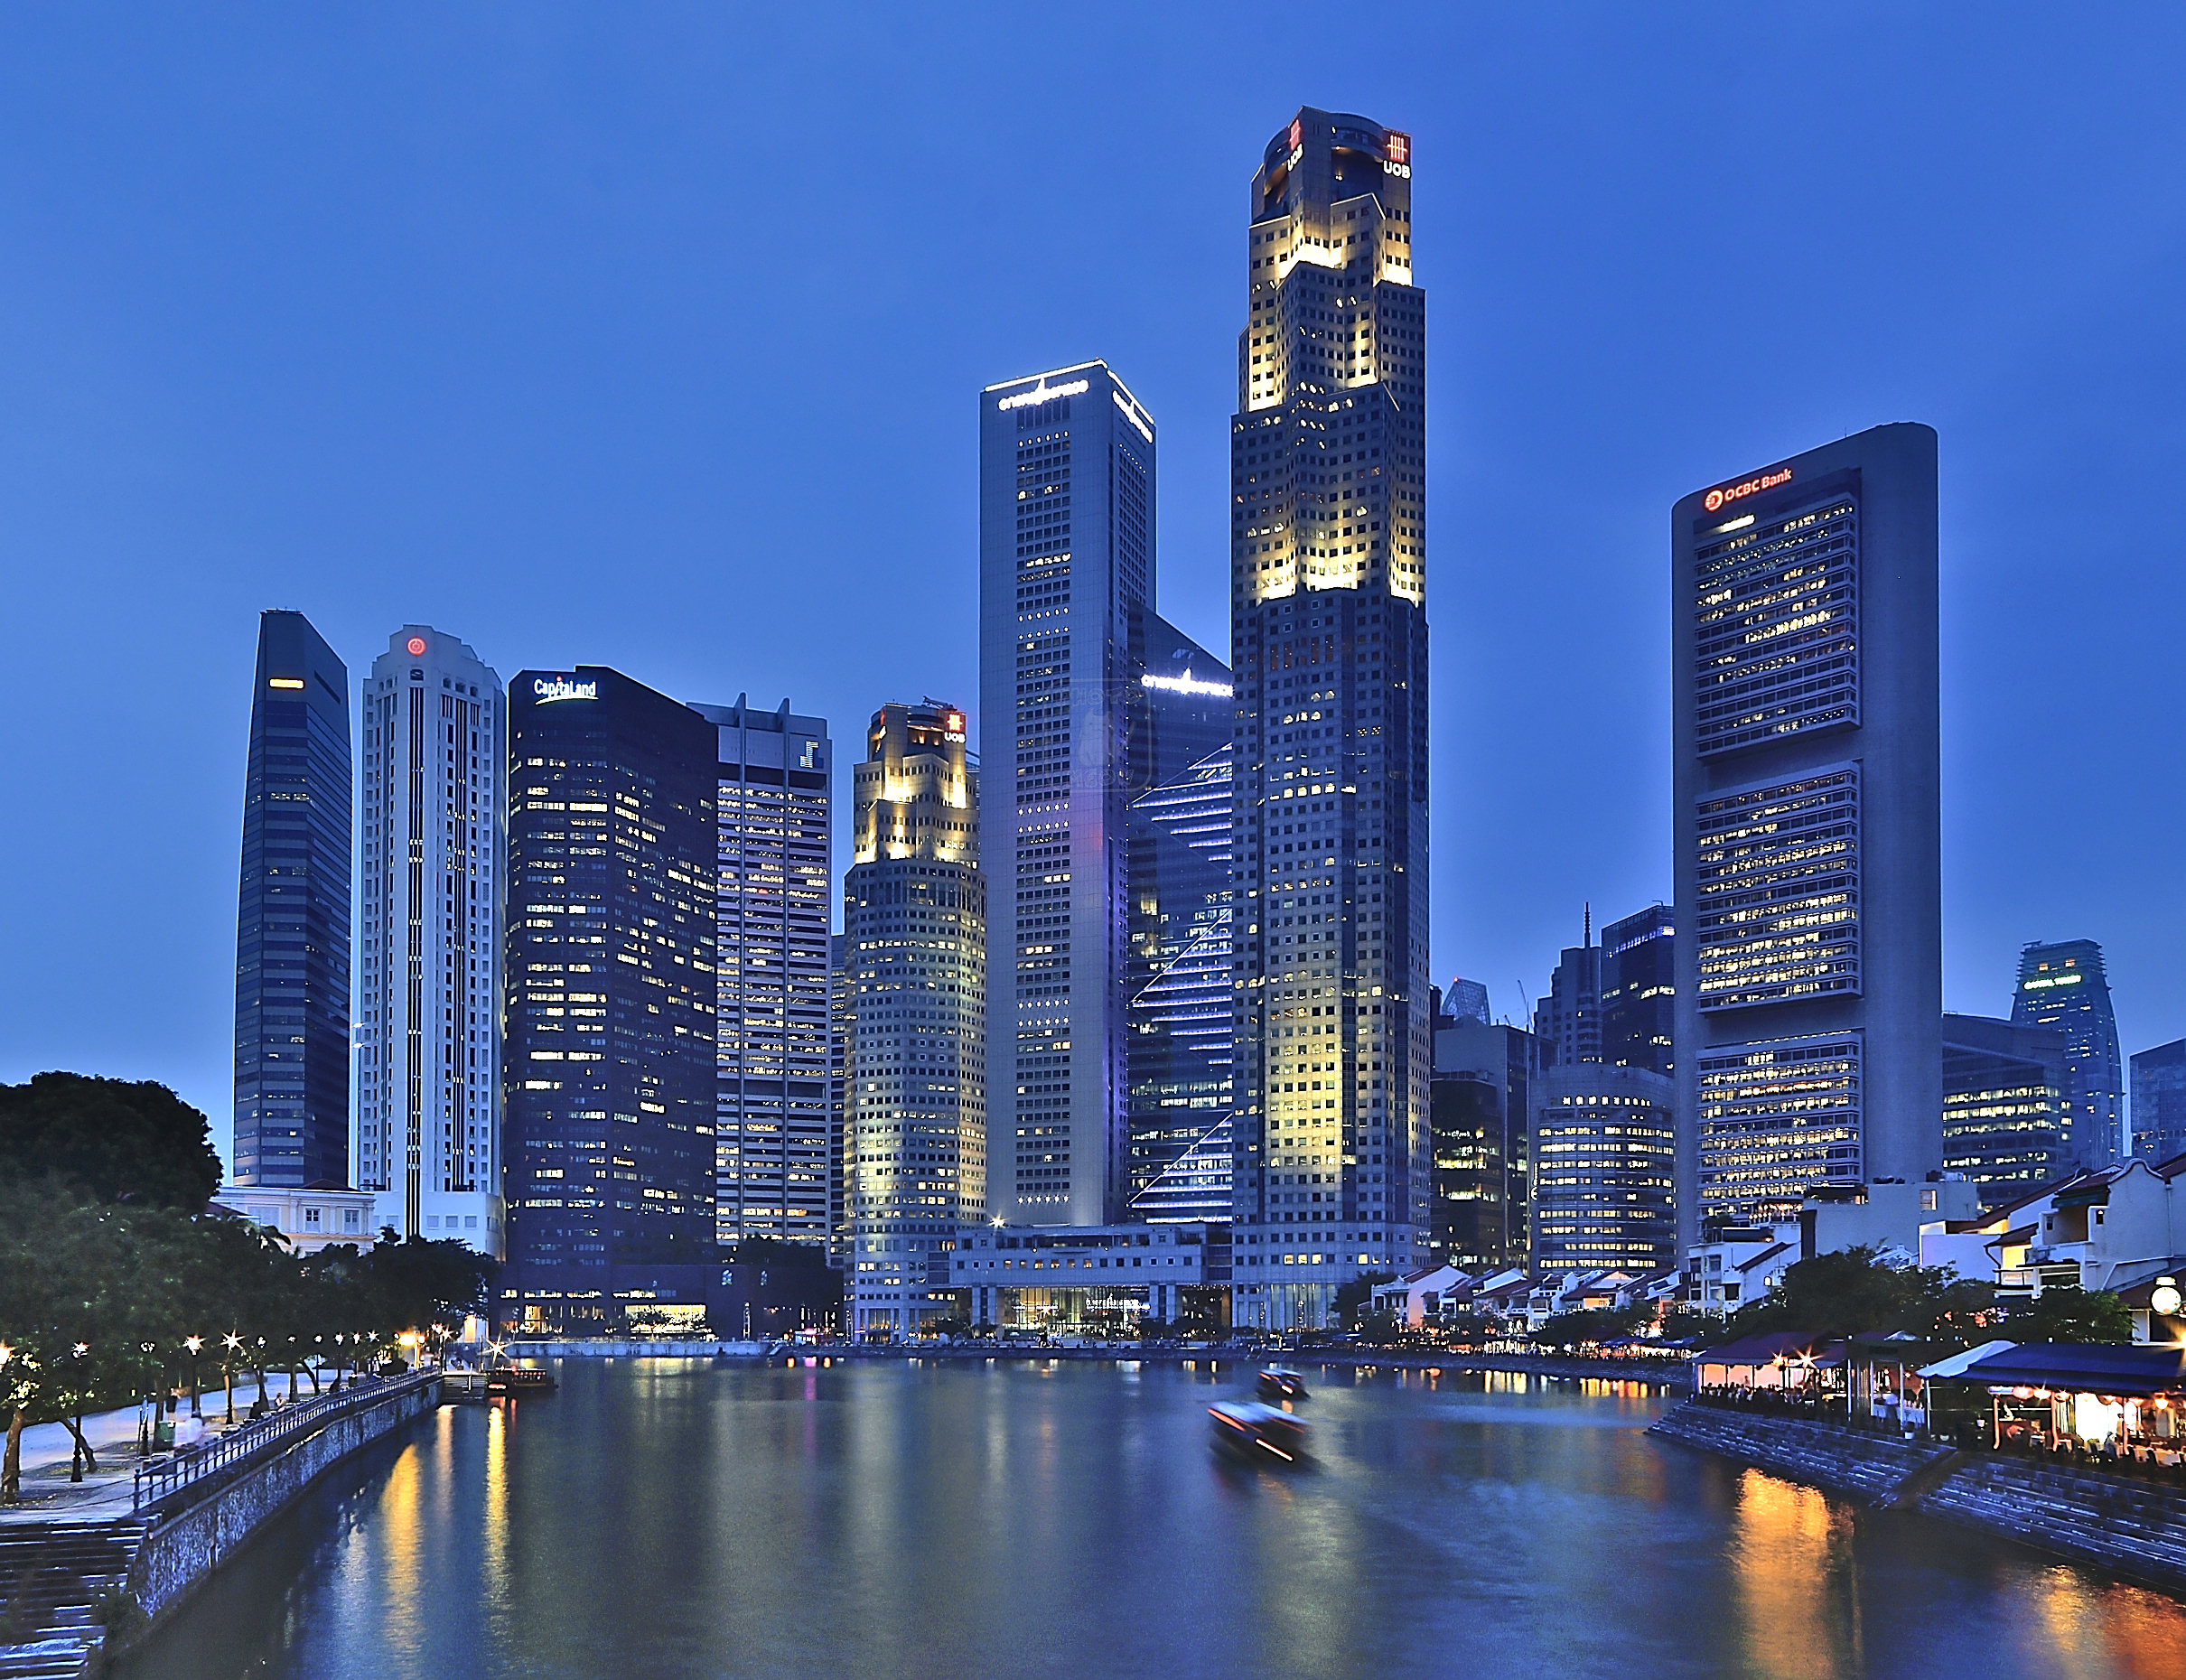 Singapore_Skyline_at_blue_hour_(8026584052) Wikimedia commons